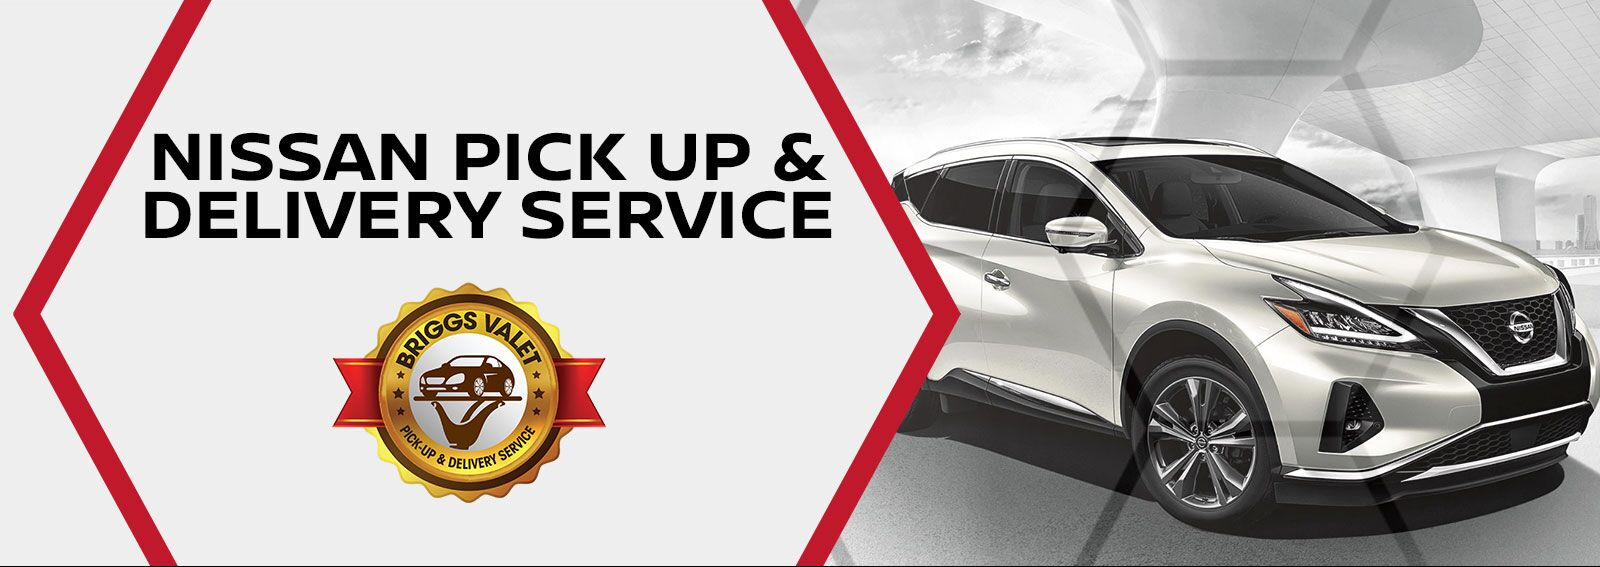 Nissan Pick Up and Delivery Service